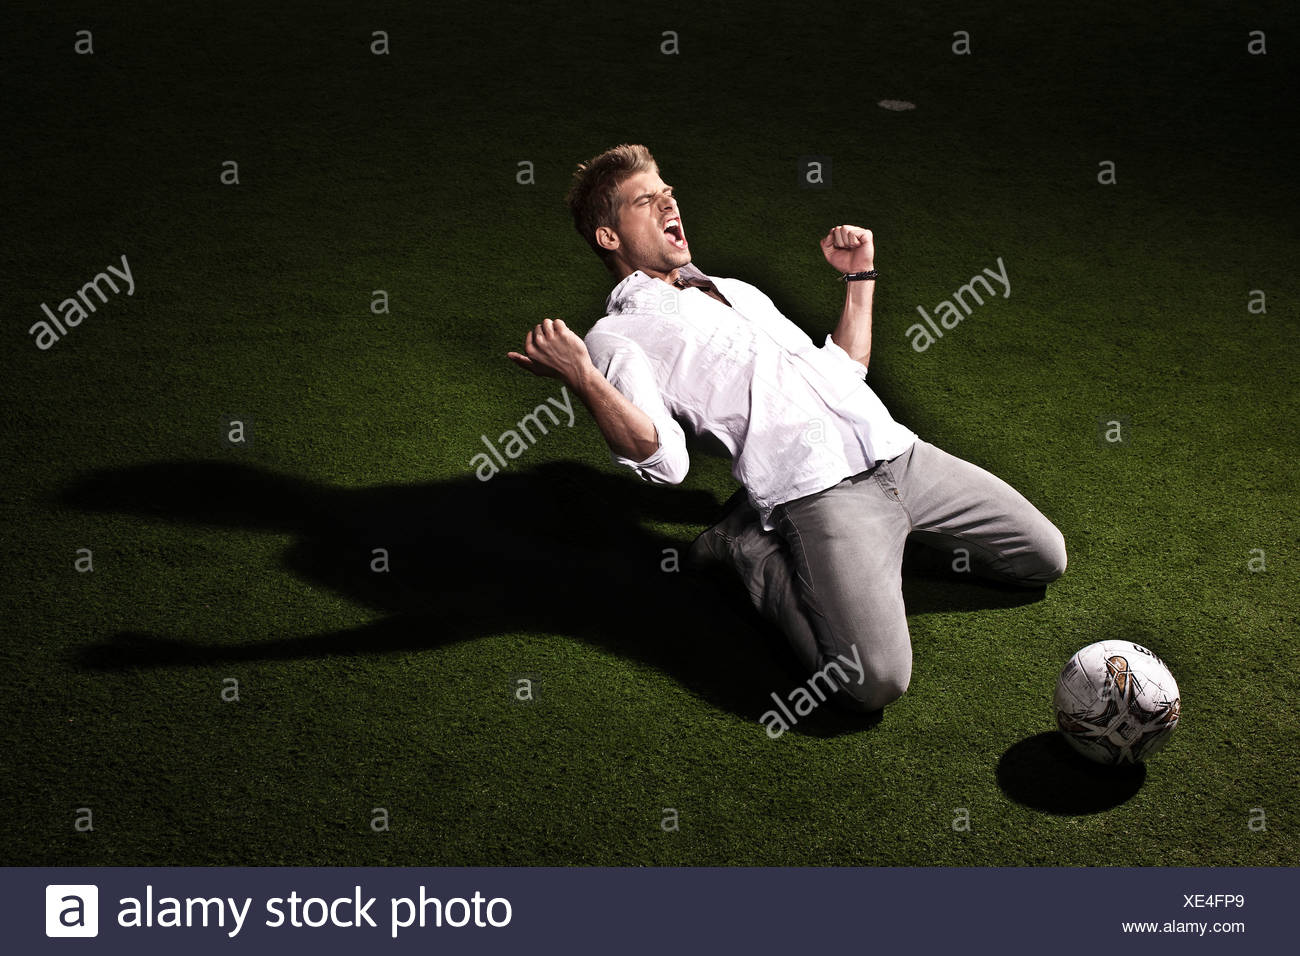 Footballer shouting and kneeling on pitch - Stock Image